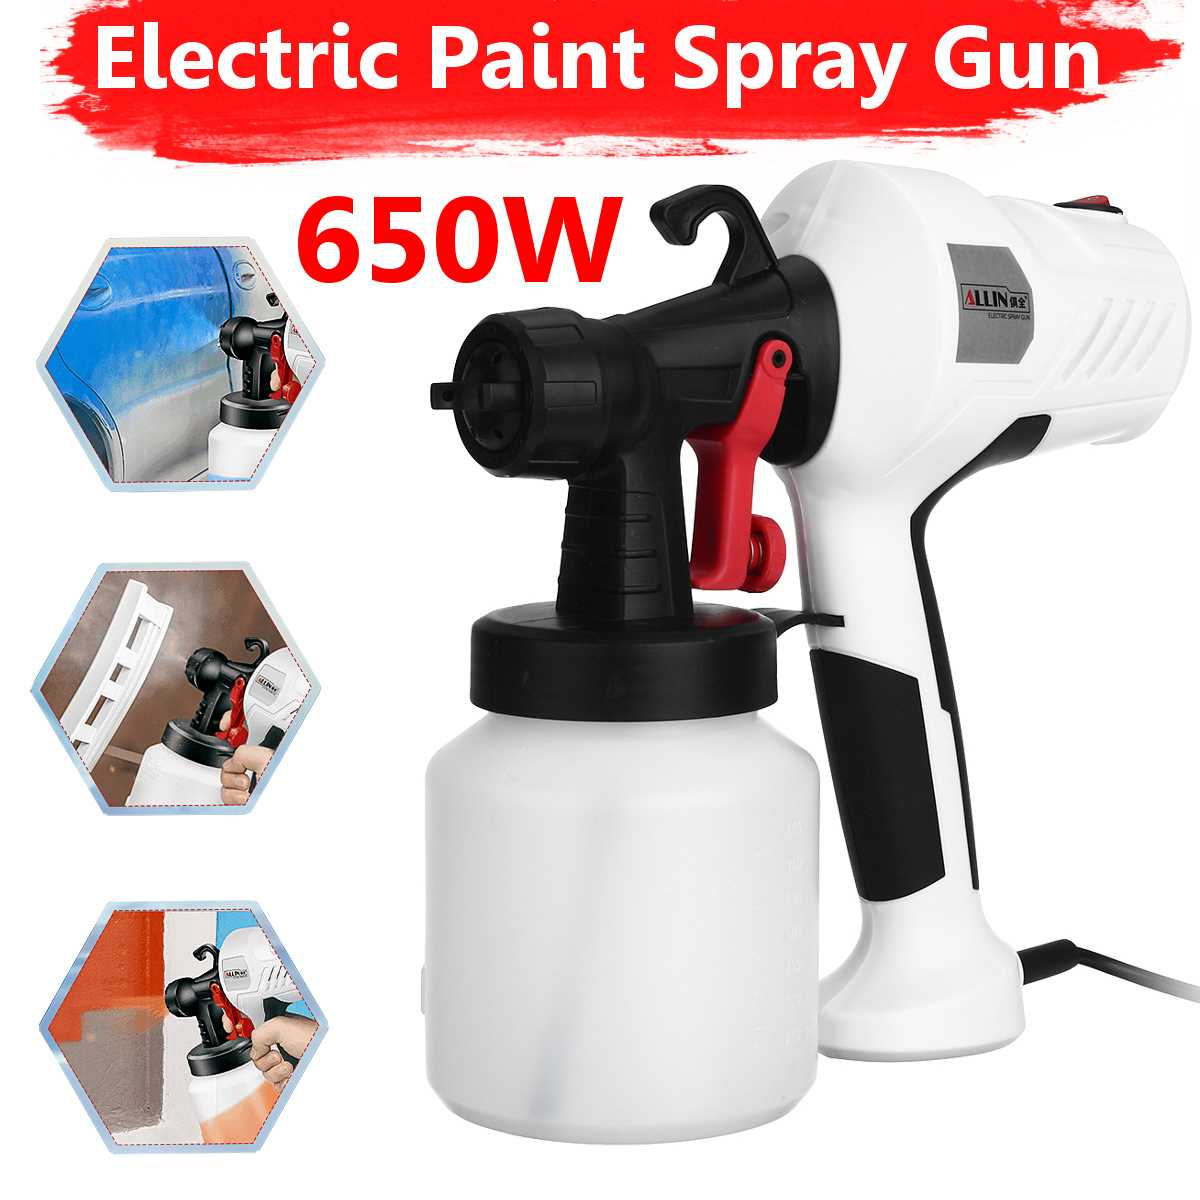 Handheld Spray Guns Paint Sprayers 220V 650W High Power Home Electric Airbrush Easy Spraying Clean Perfect For Beginner